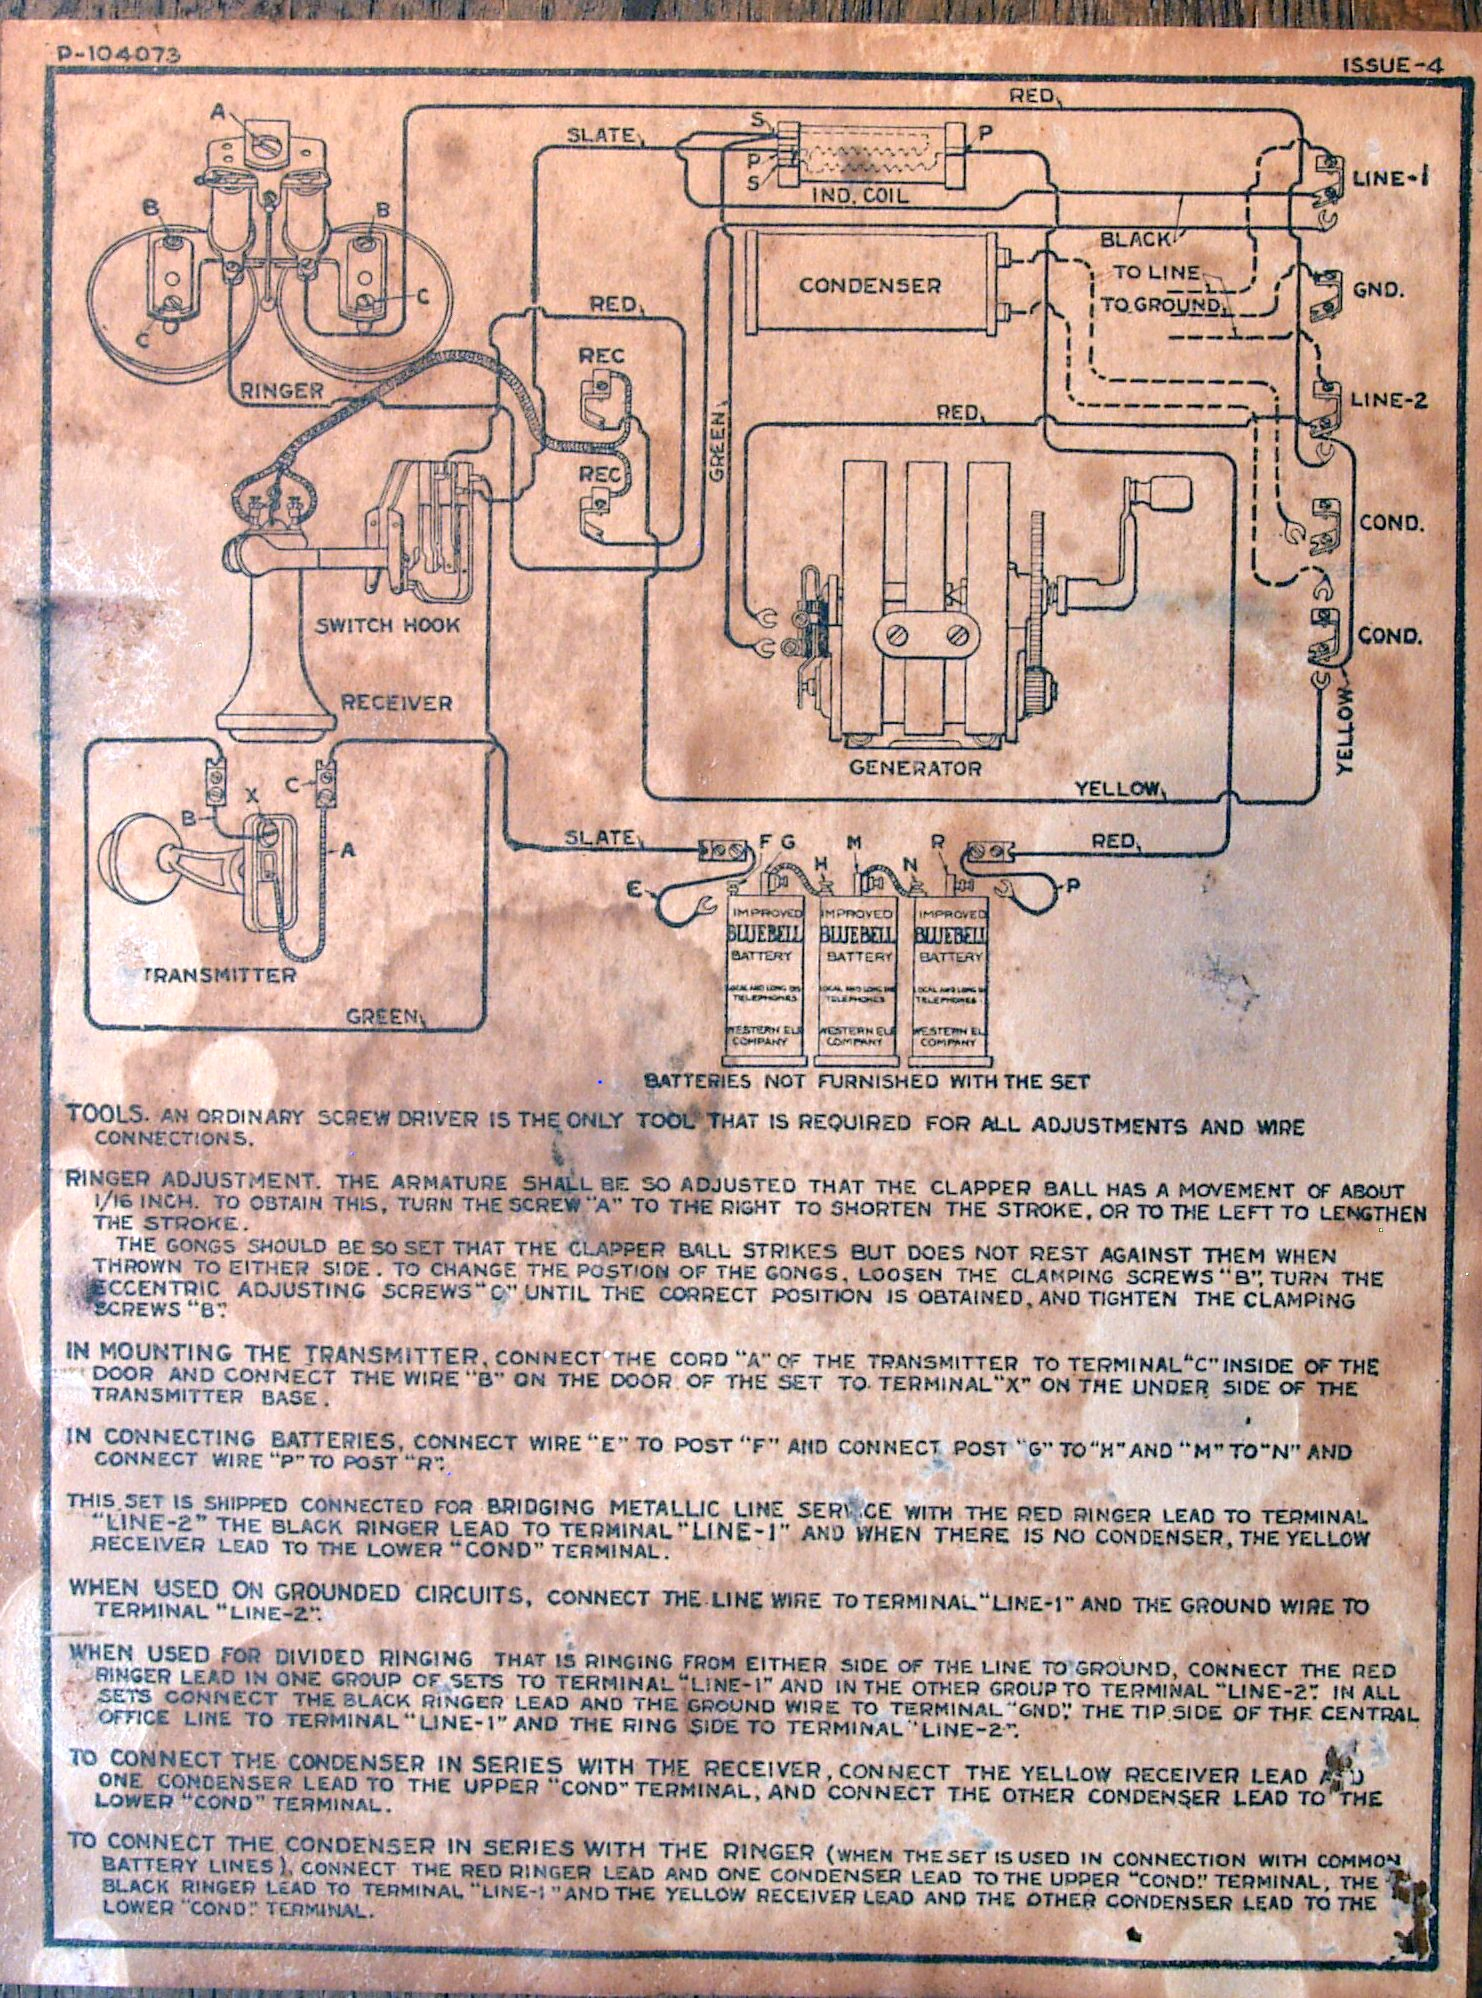 Antique Phone Wiring Diagram - Wiring Diagrams Pause on